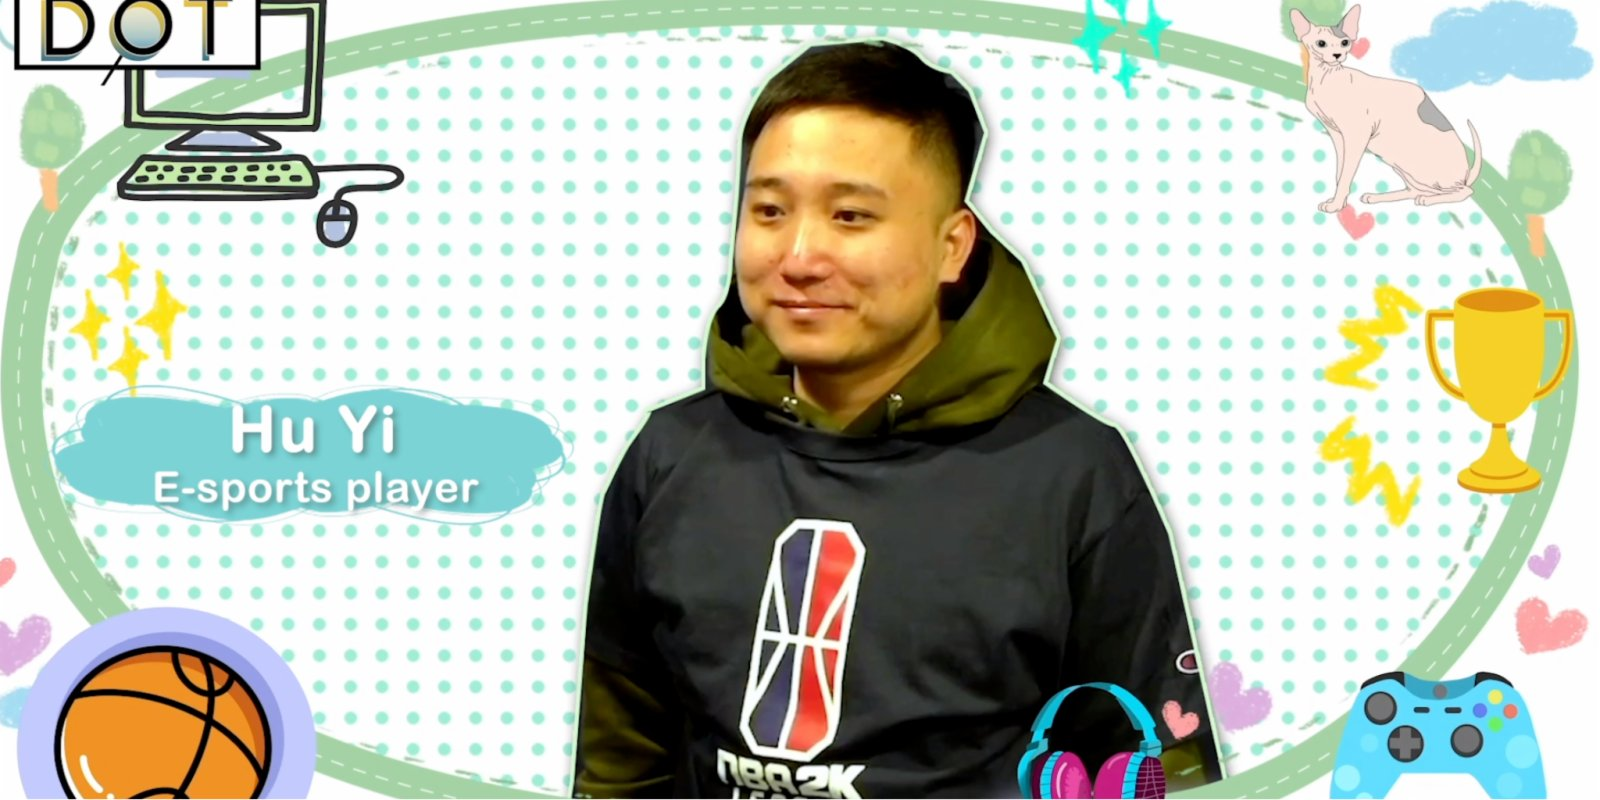 Watch This | E-sports professional: Hu Yi realizes his basketball dream virtually